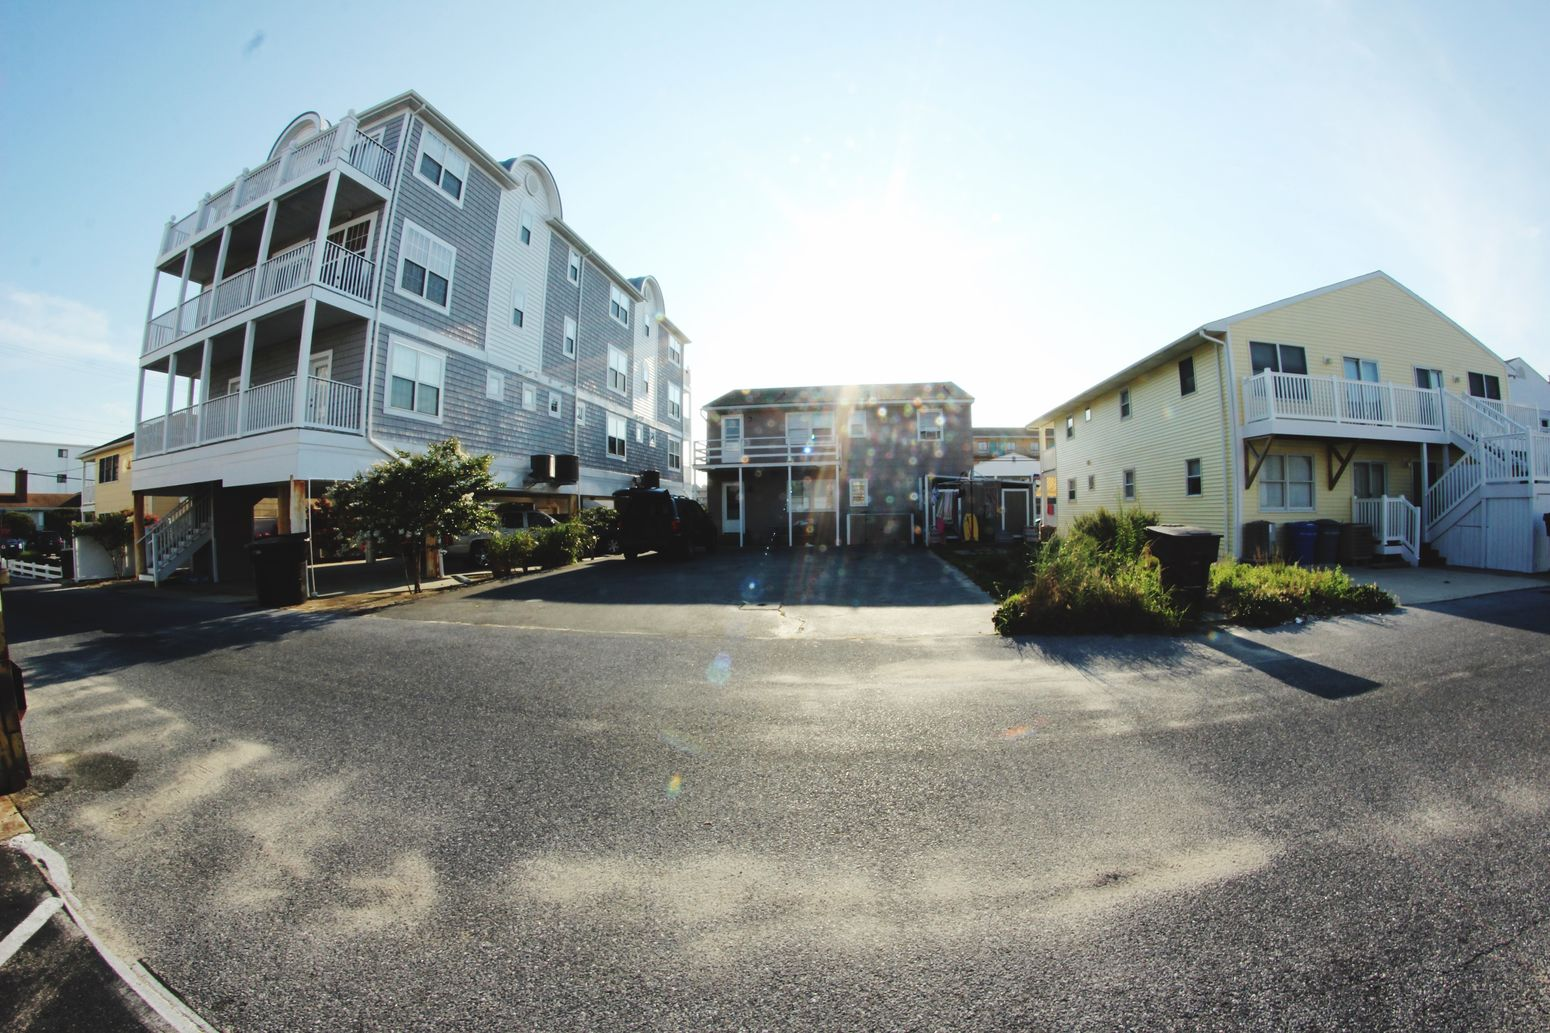 Fisheye makes our house look very Small , Lol :)